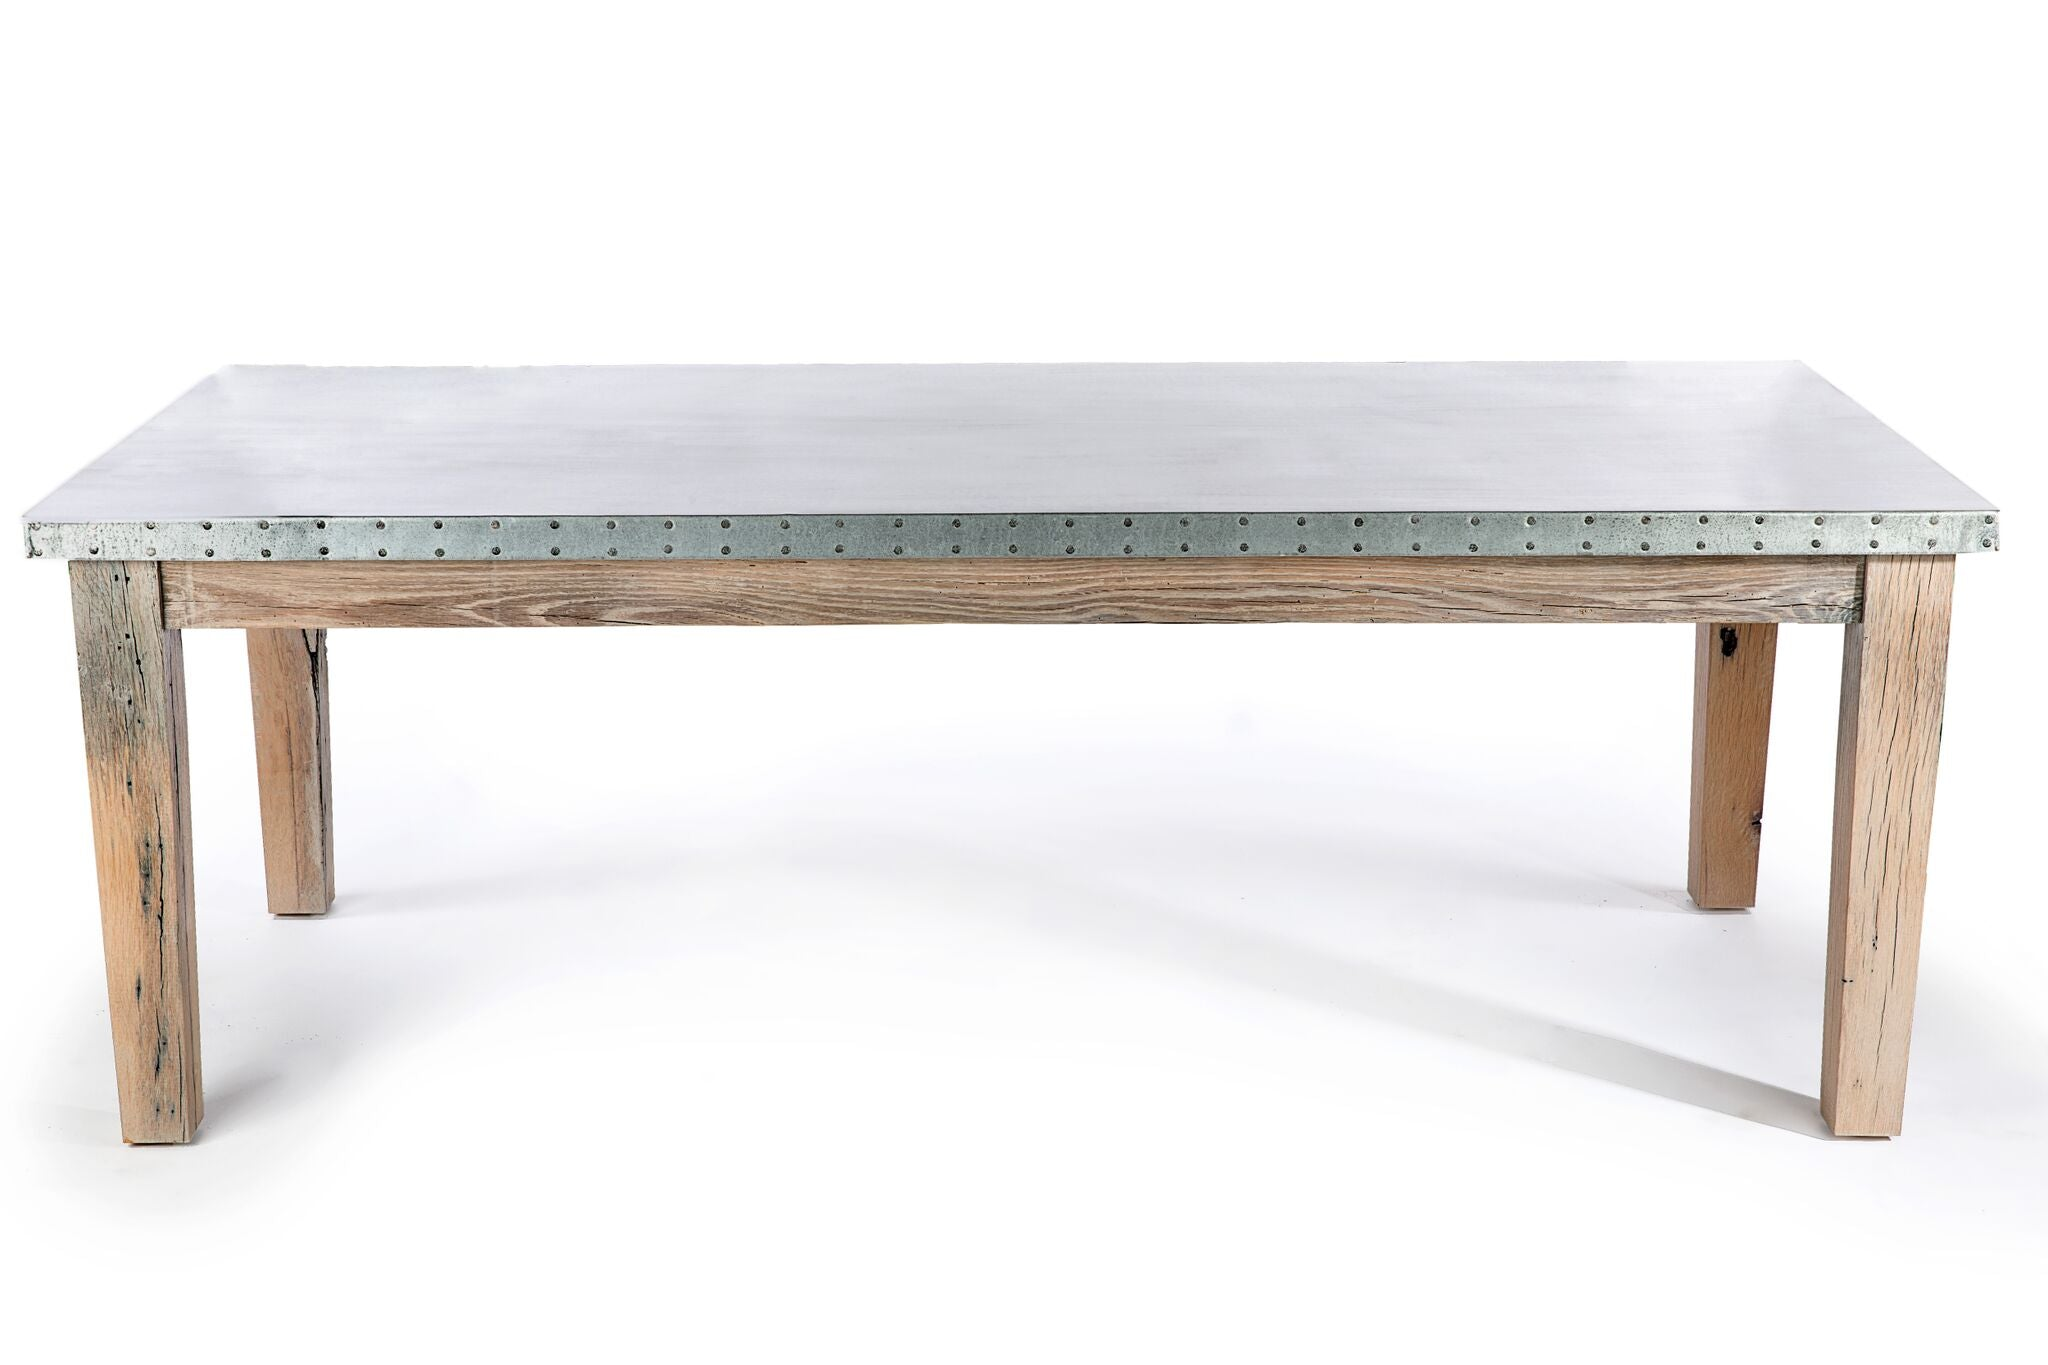 Zinc Rectangular Table | Cambridge Table | CLASSIC | Natural Ash | CUSTOM SIZE L 60 W 37 H 30 |